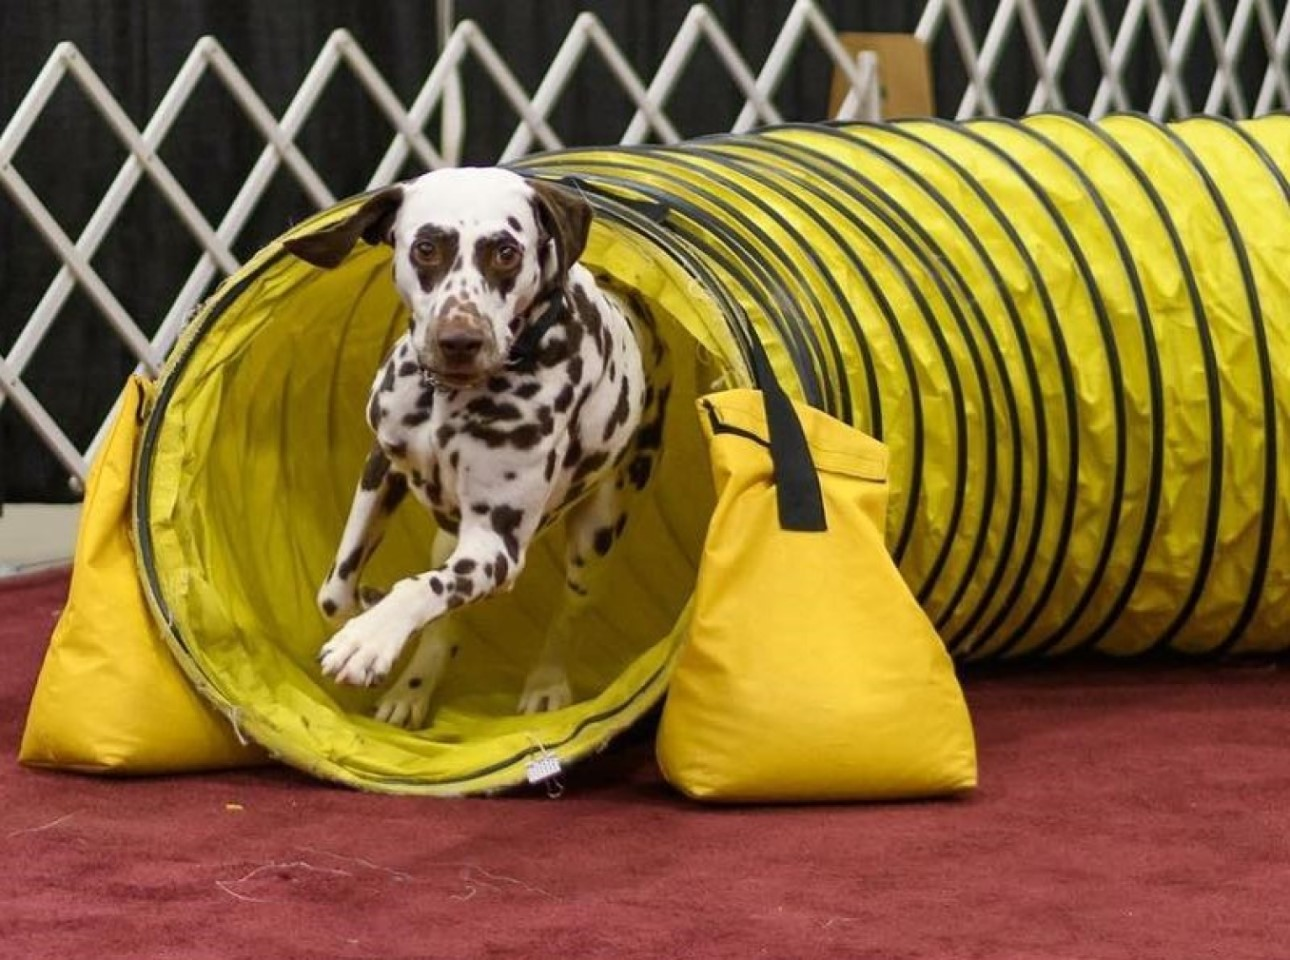 William The Dalmatian - Running Through A Competition Tunnel